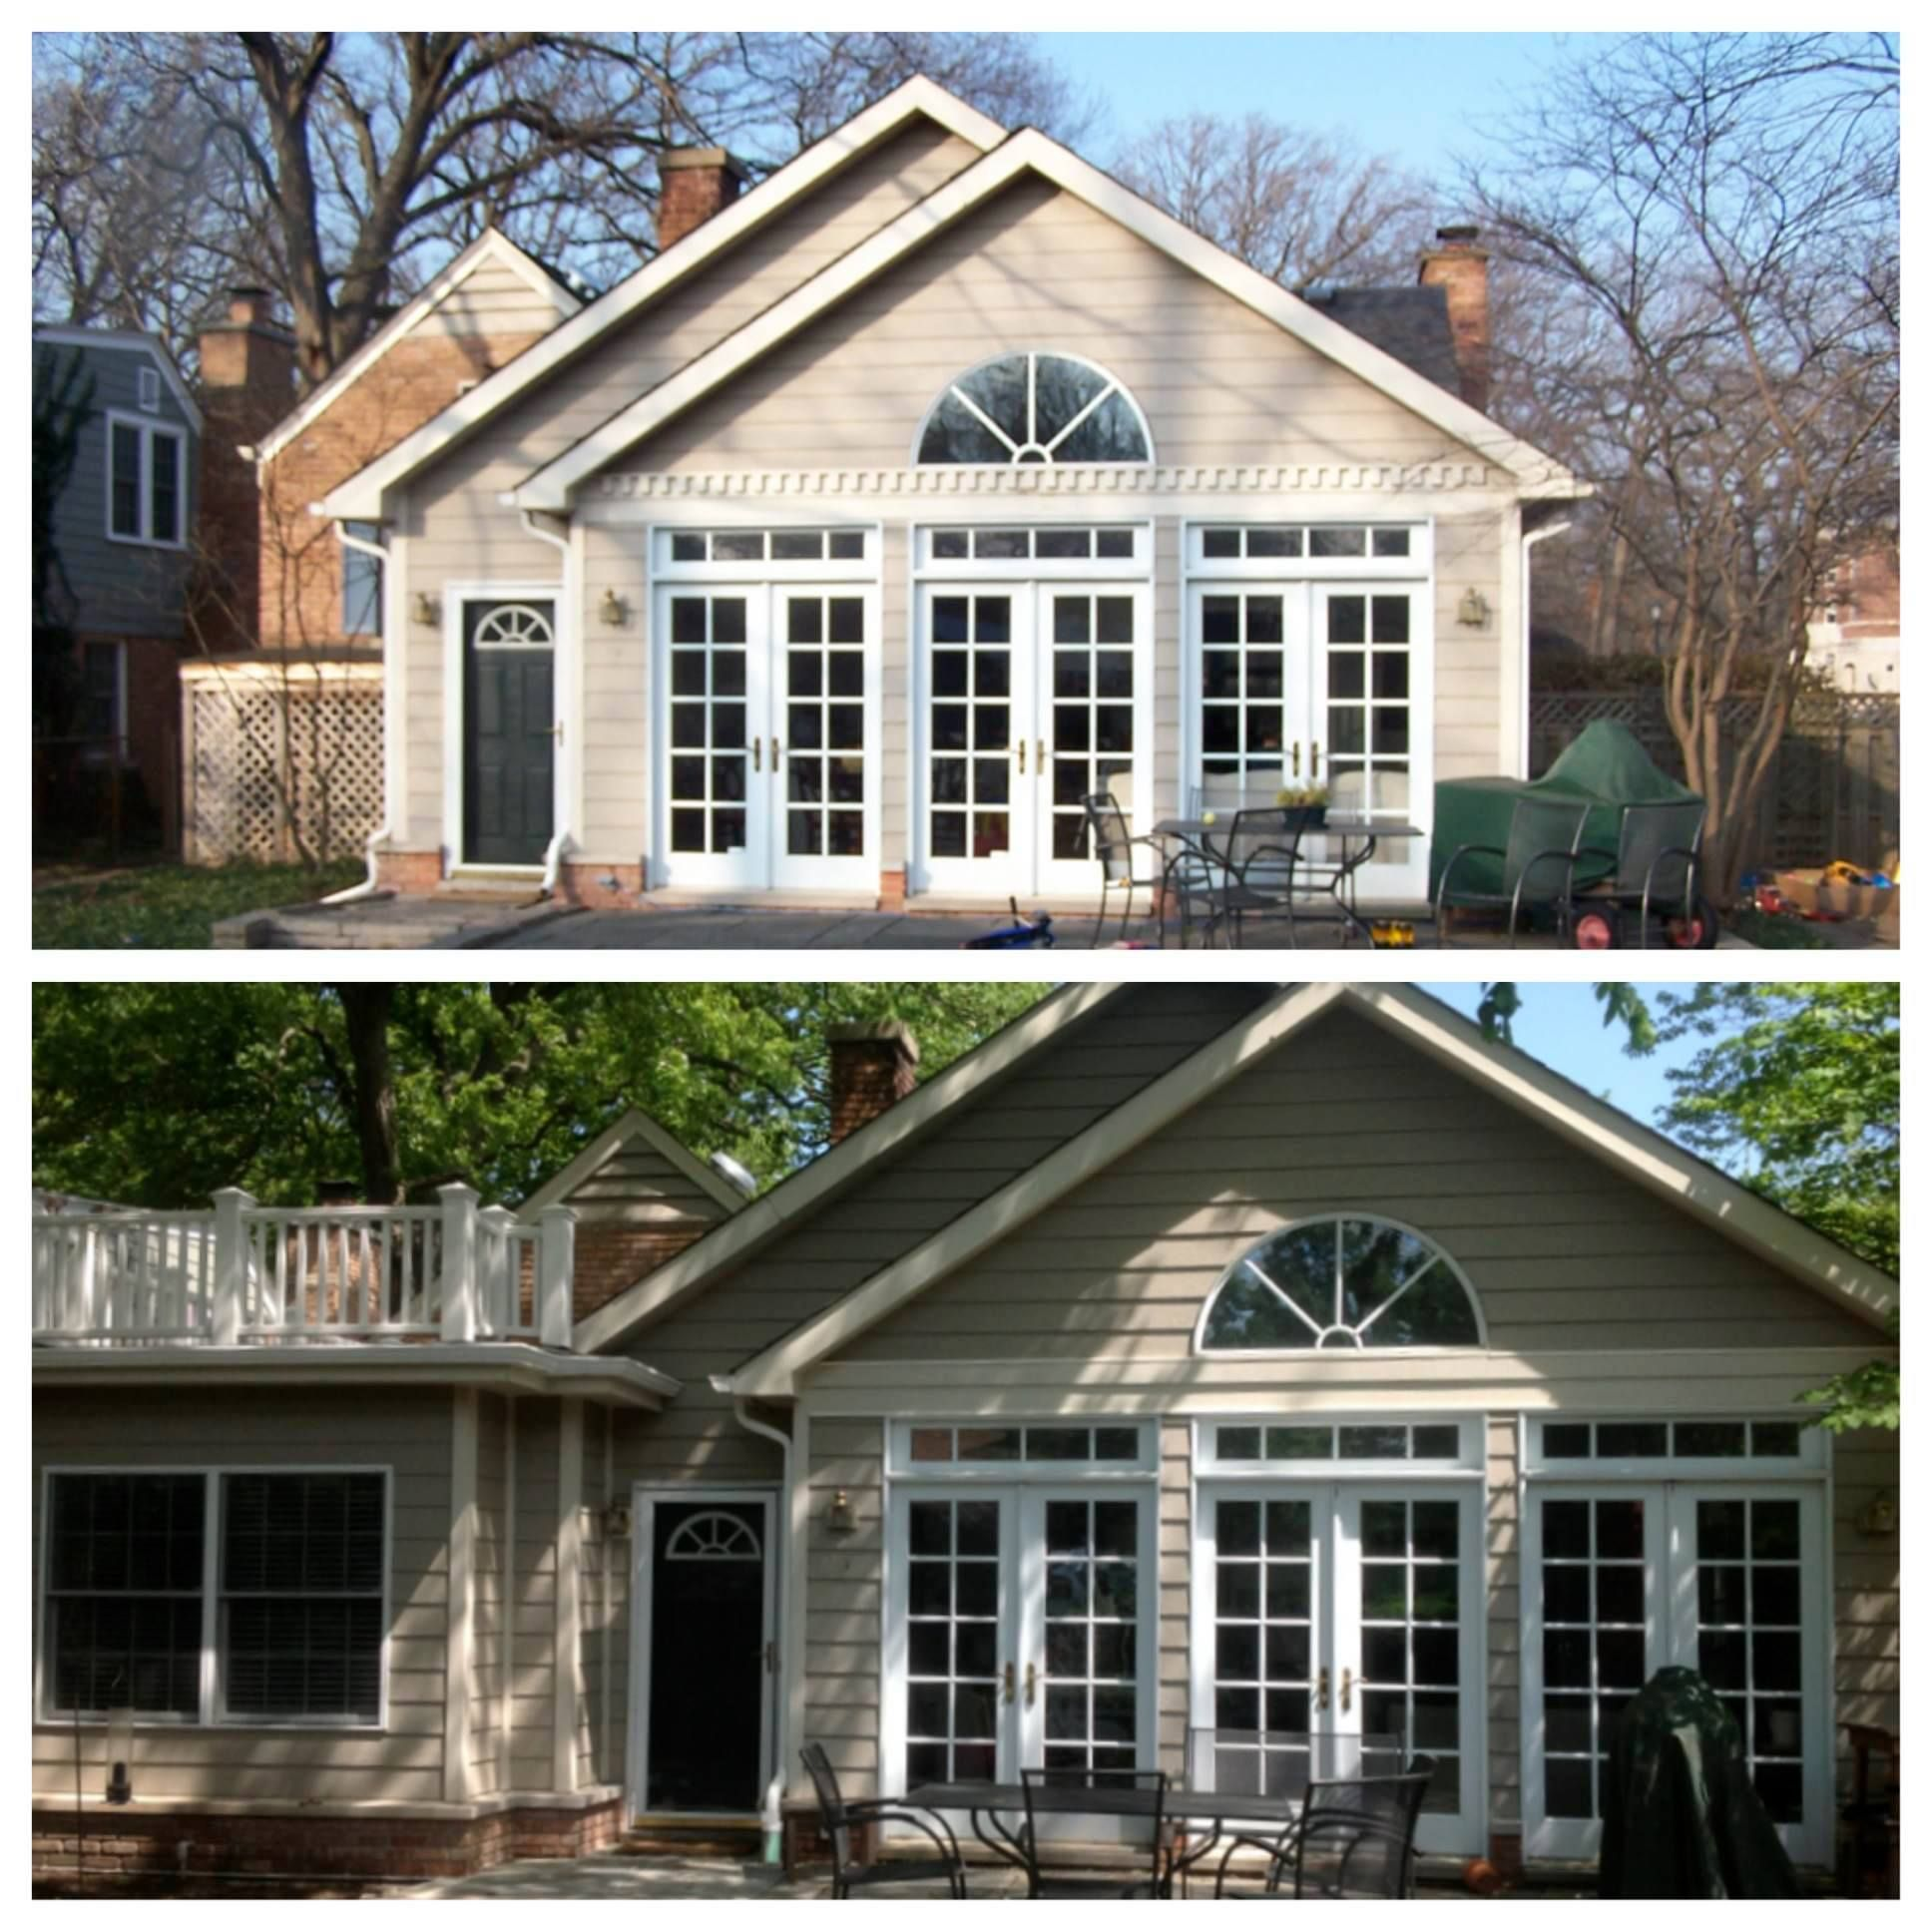 A before/after photo collage from our home addition in Evanston, IL.